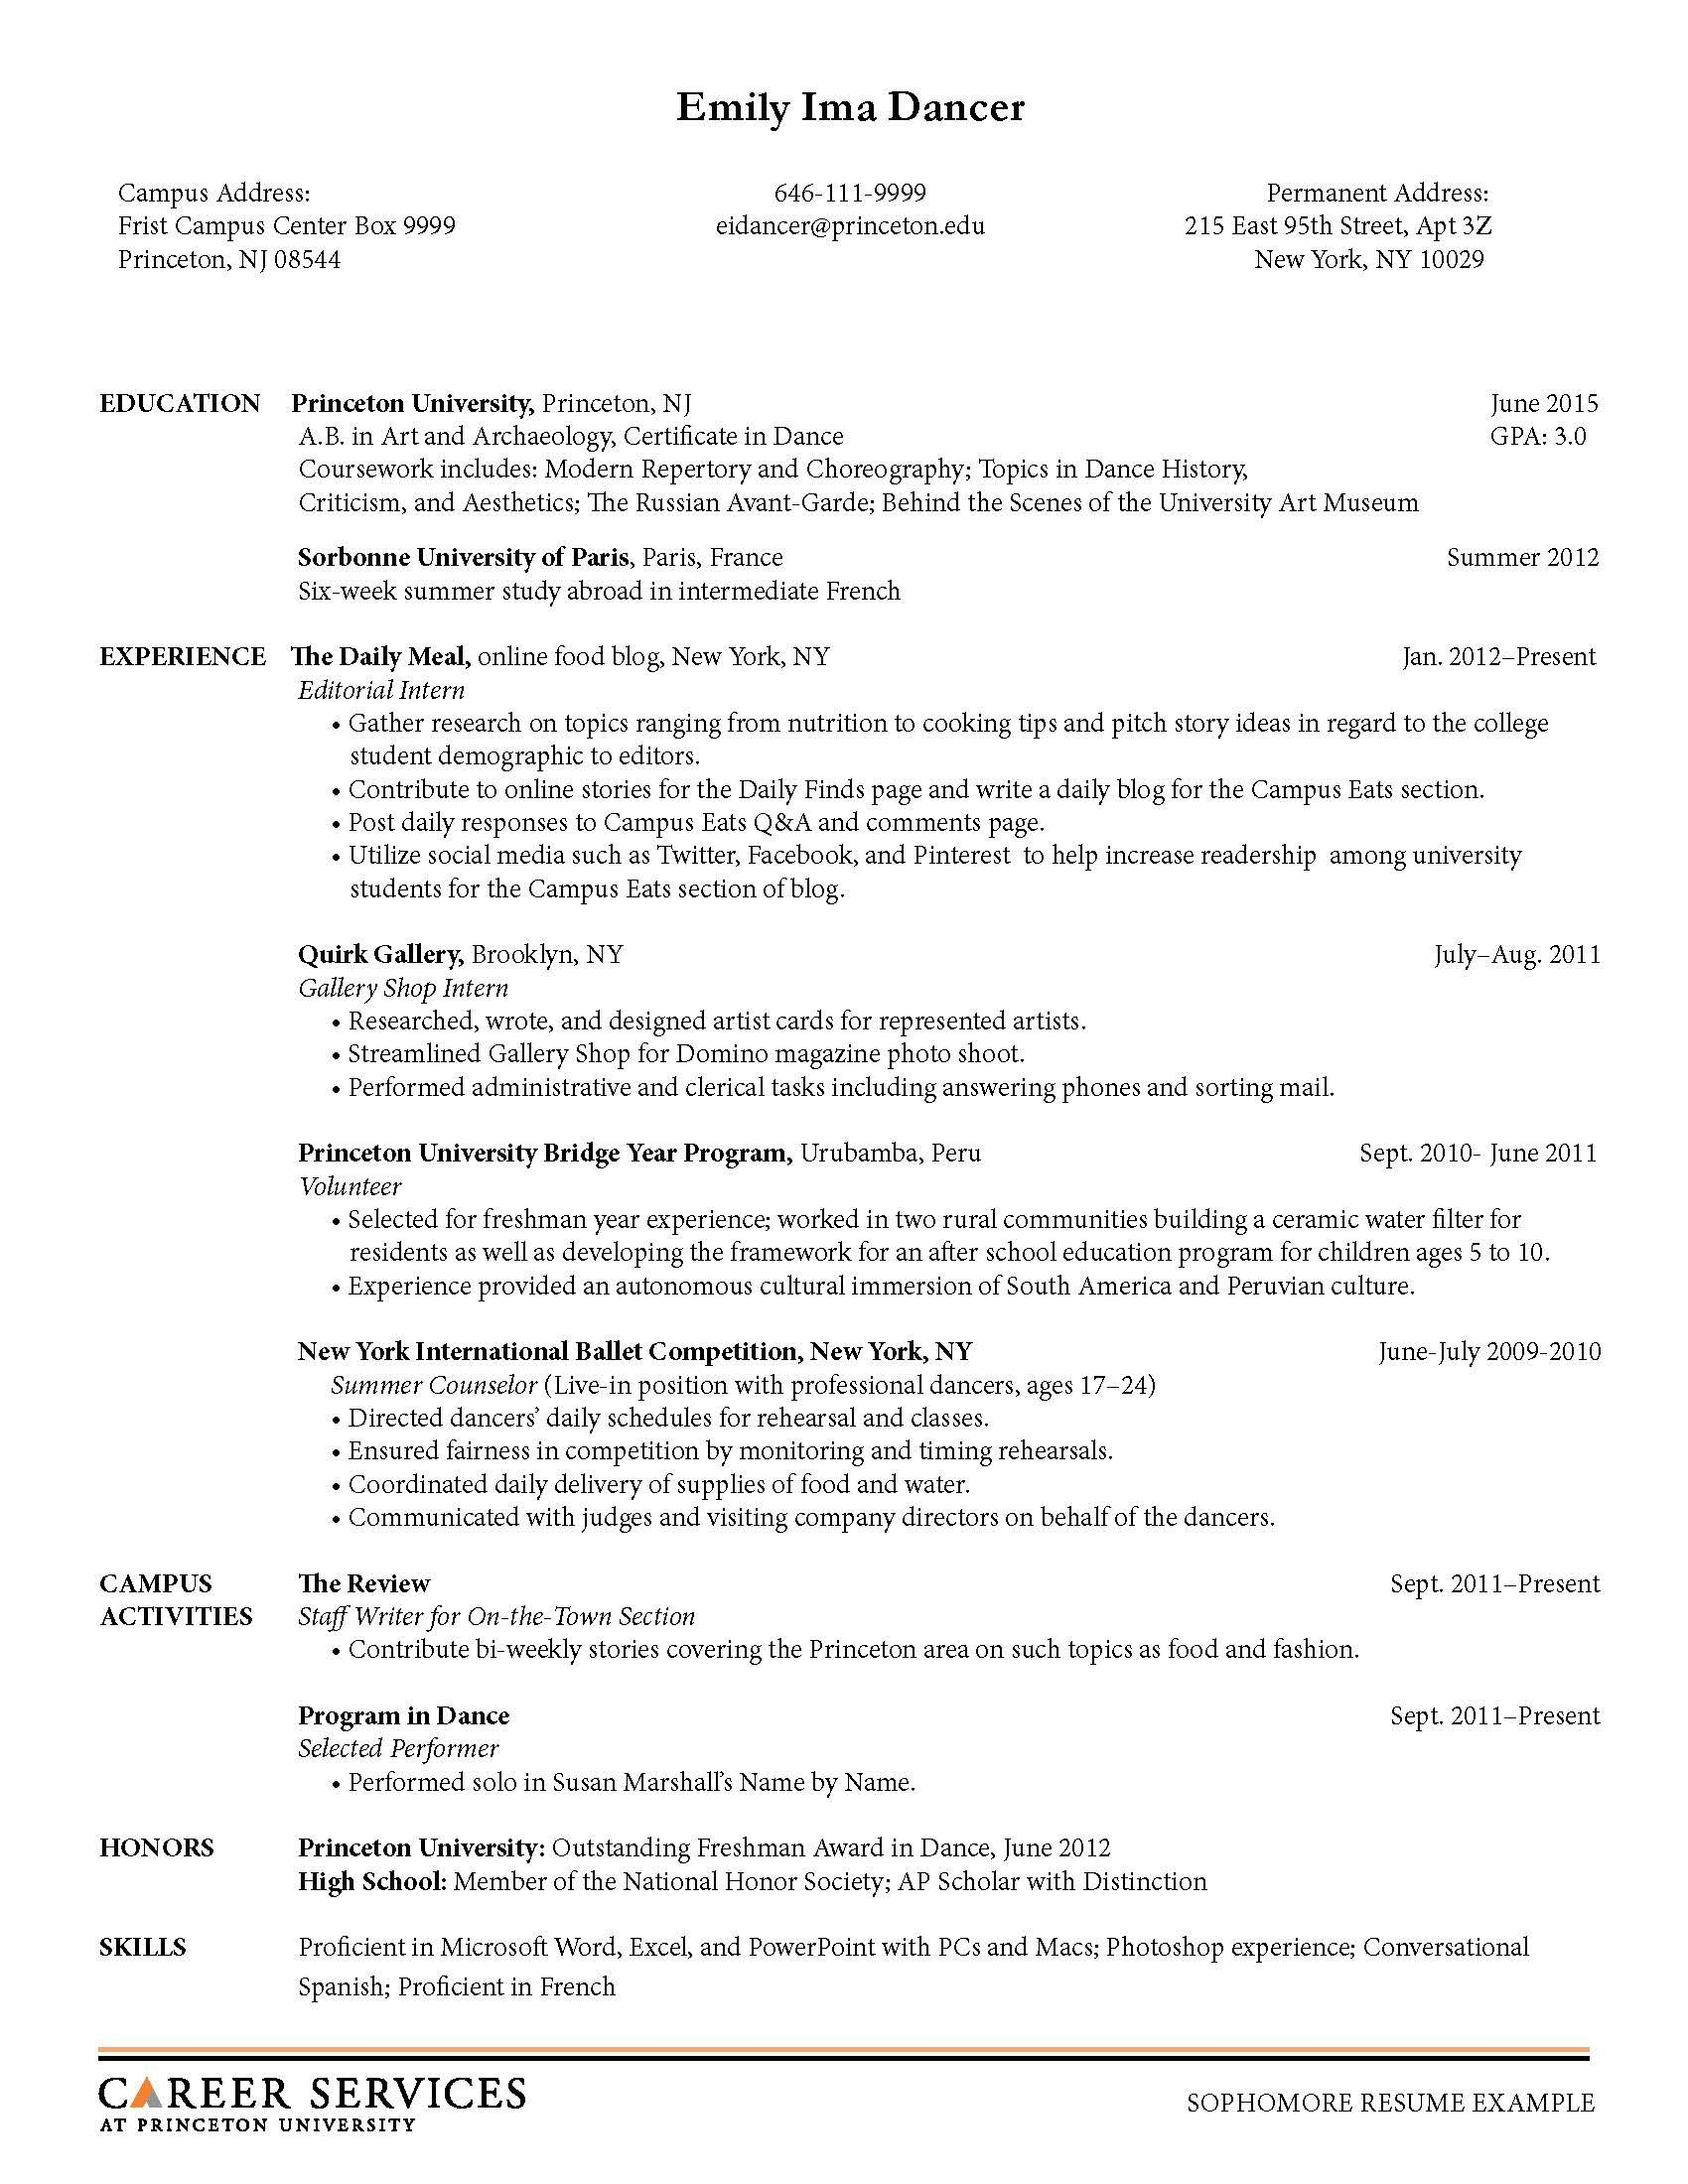 Picnictoimpeachus  Terrific Sample Resume Resume And Career On Pinterest With Luxury Dialysis Nurse Resume Besides Sample Marketing Resumes Furthermore Electrical Technician Resume With Amazing Biomedical Engineer Resume Also Masters Resume In Addition Headshot And Resume And Building A Professional Resume As Well As Recommended Resume Font Additionally Recruiter Resume Example From Pinterestcom With Picnictoimpeachus  Luxury Sample Resume Resume And Career On Pinterest With Amazing Dialysis Nurse Resume Besides Sample Marketing Resumes Furthermore Electrical Technician Resume And Terrific Biomedical Engineer Resume Also Masters Resume In Addition Headshot And Resume From Pinterestcom